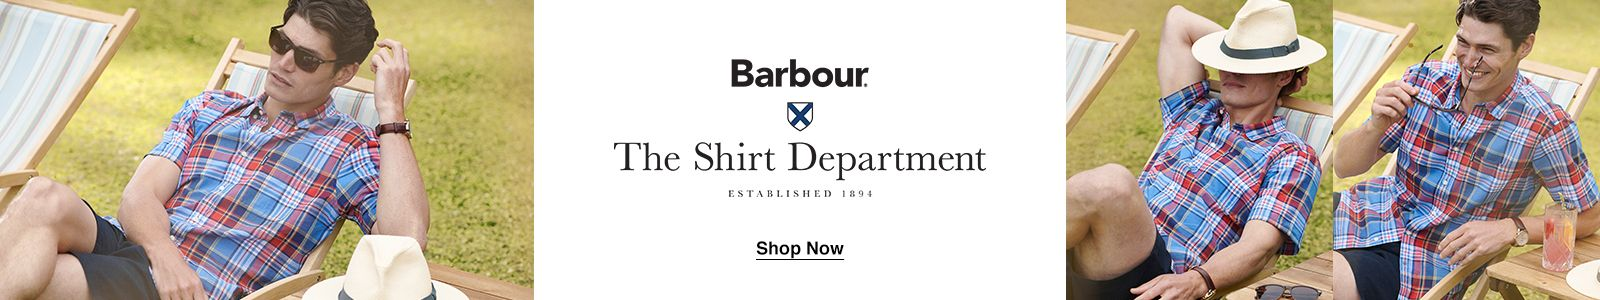 Barbour, The Shirt Department